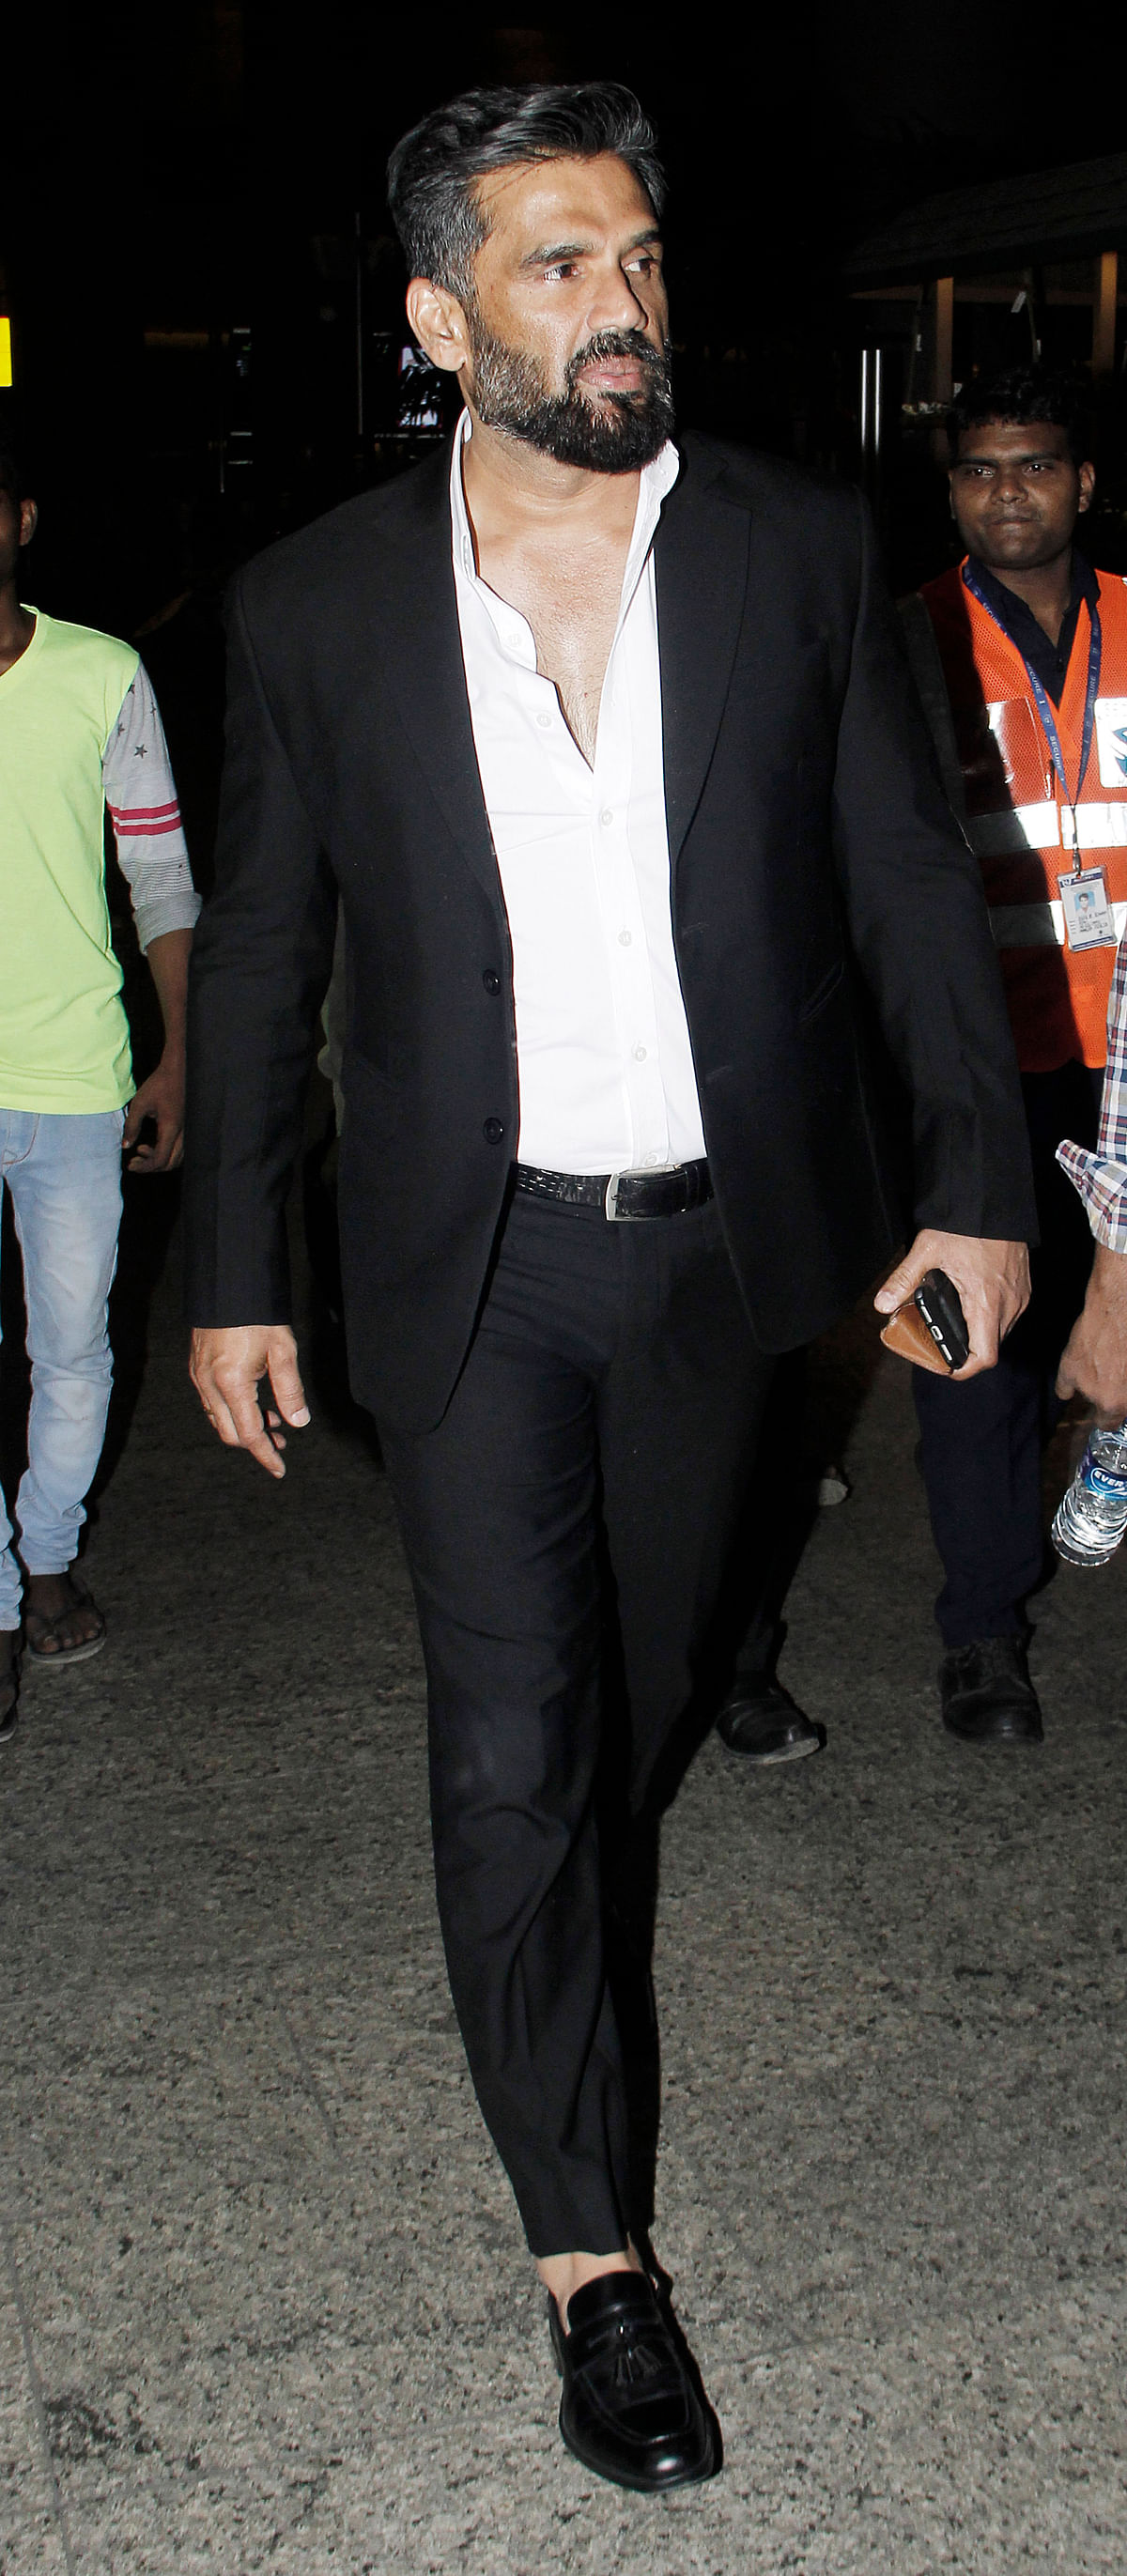 Sunil Shetty in his airport look.